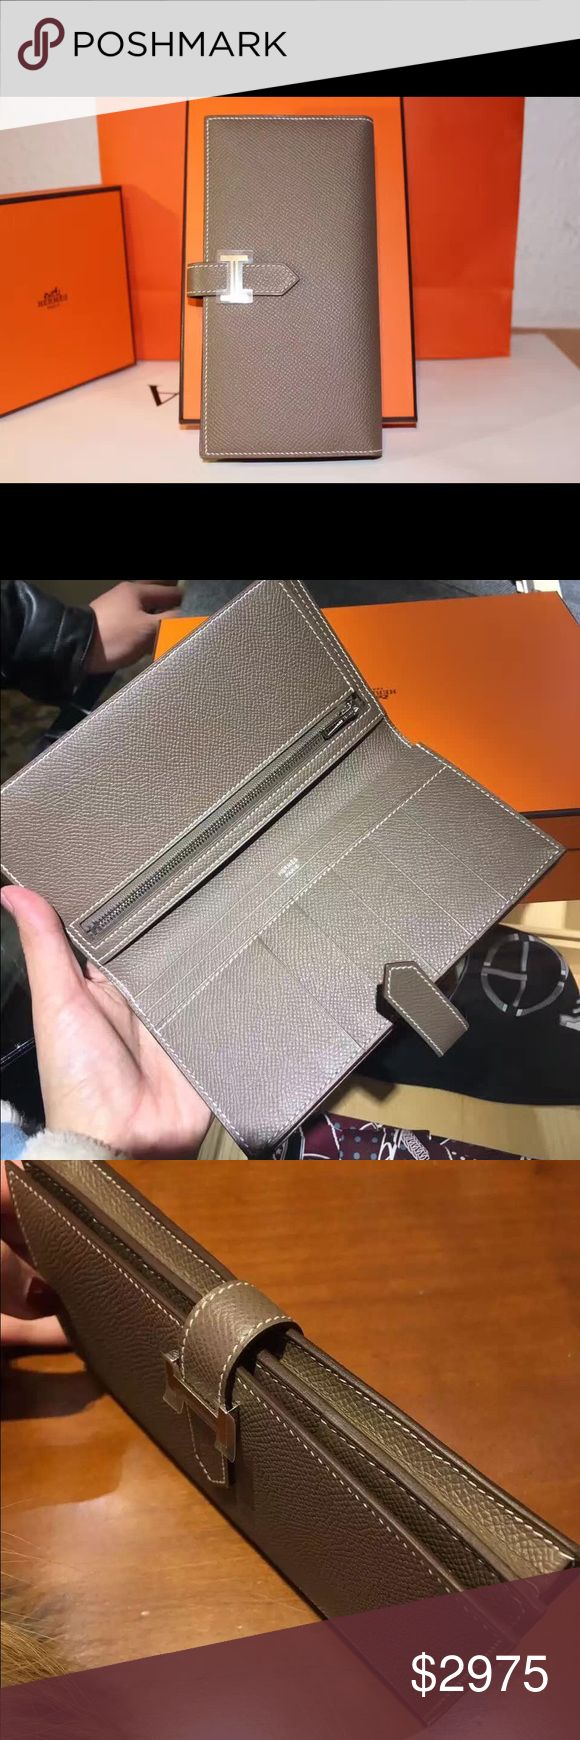 Hermēs classical Taupe Béarn Wallet X Stamp Hermēs classical Béarn Wallet Color:Taupe  Location of buying: Frankfurt Airport, Germany Condition: Brand New (unworn) Receipt: Yes  Box: Original Box  Shipping Location: Hong Kong Hermes Bags Wallets